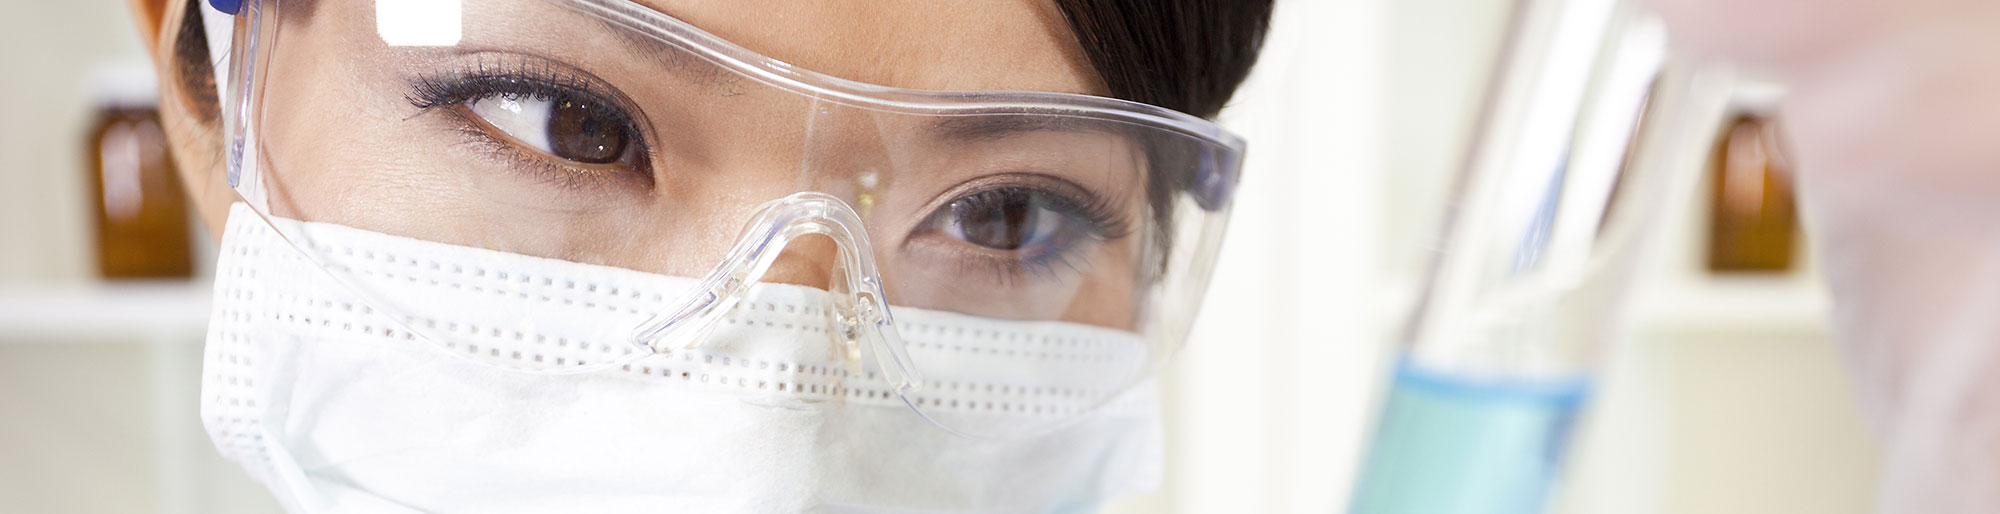 Woman Wearing Safety Glasses and a Medical Mask